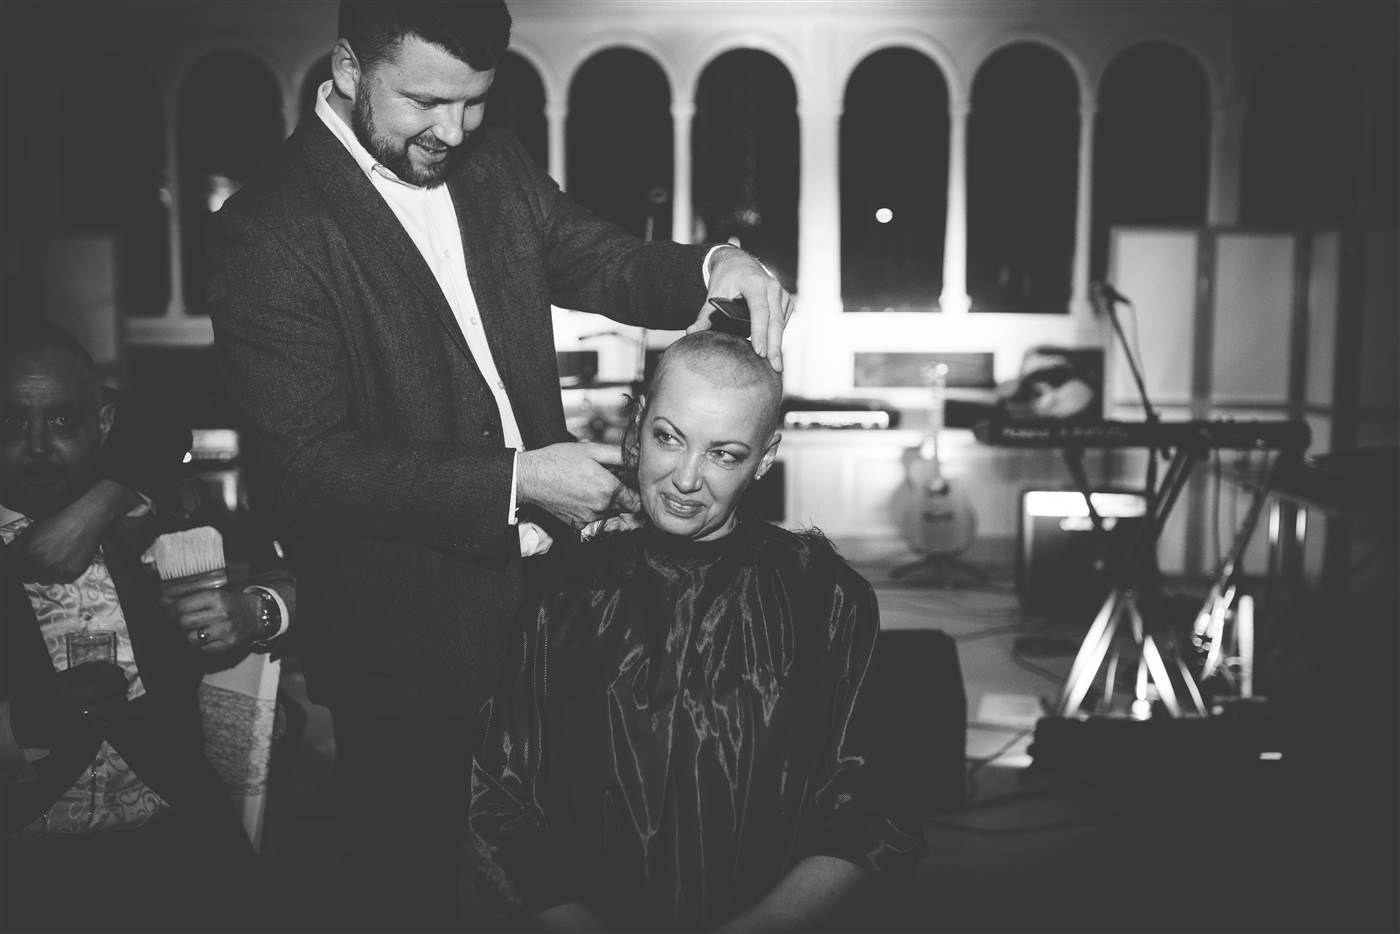 bride-shaved-head-today-160419_1eb2d6877377a683c9eabfdcba6b3eb9.today-inline-large2x (1)